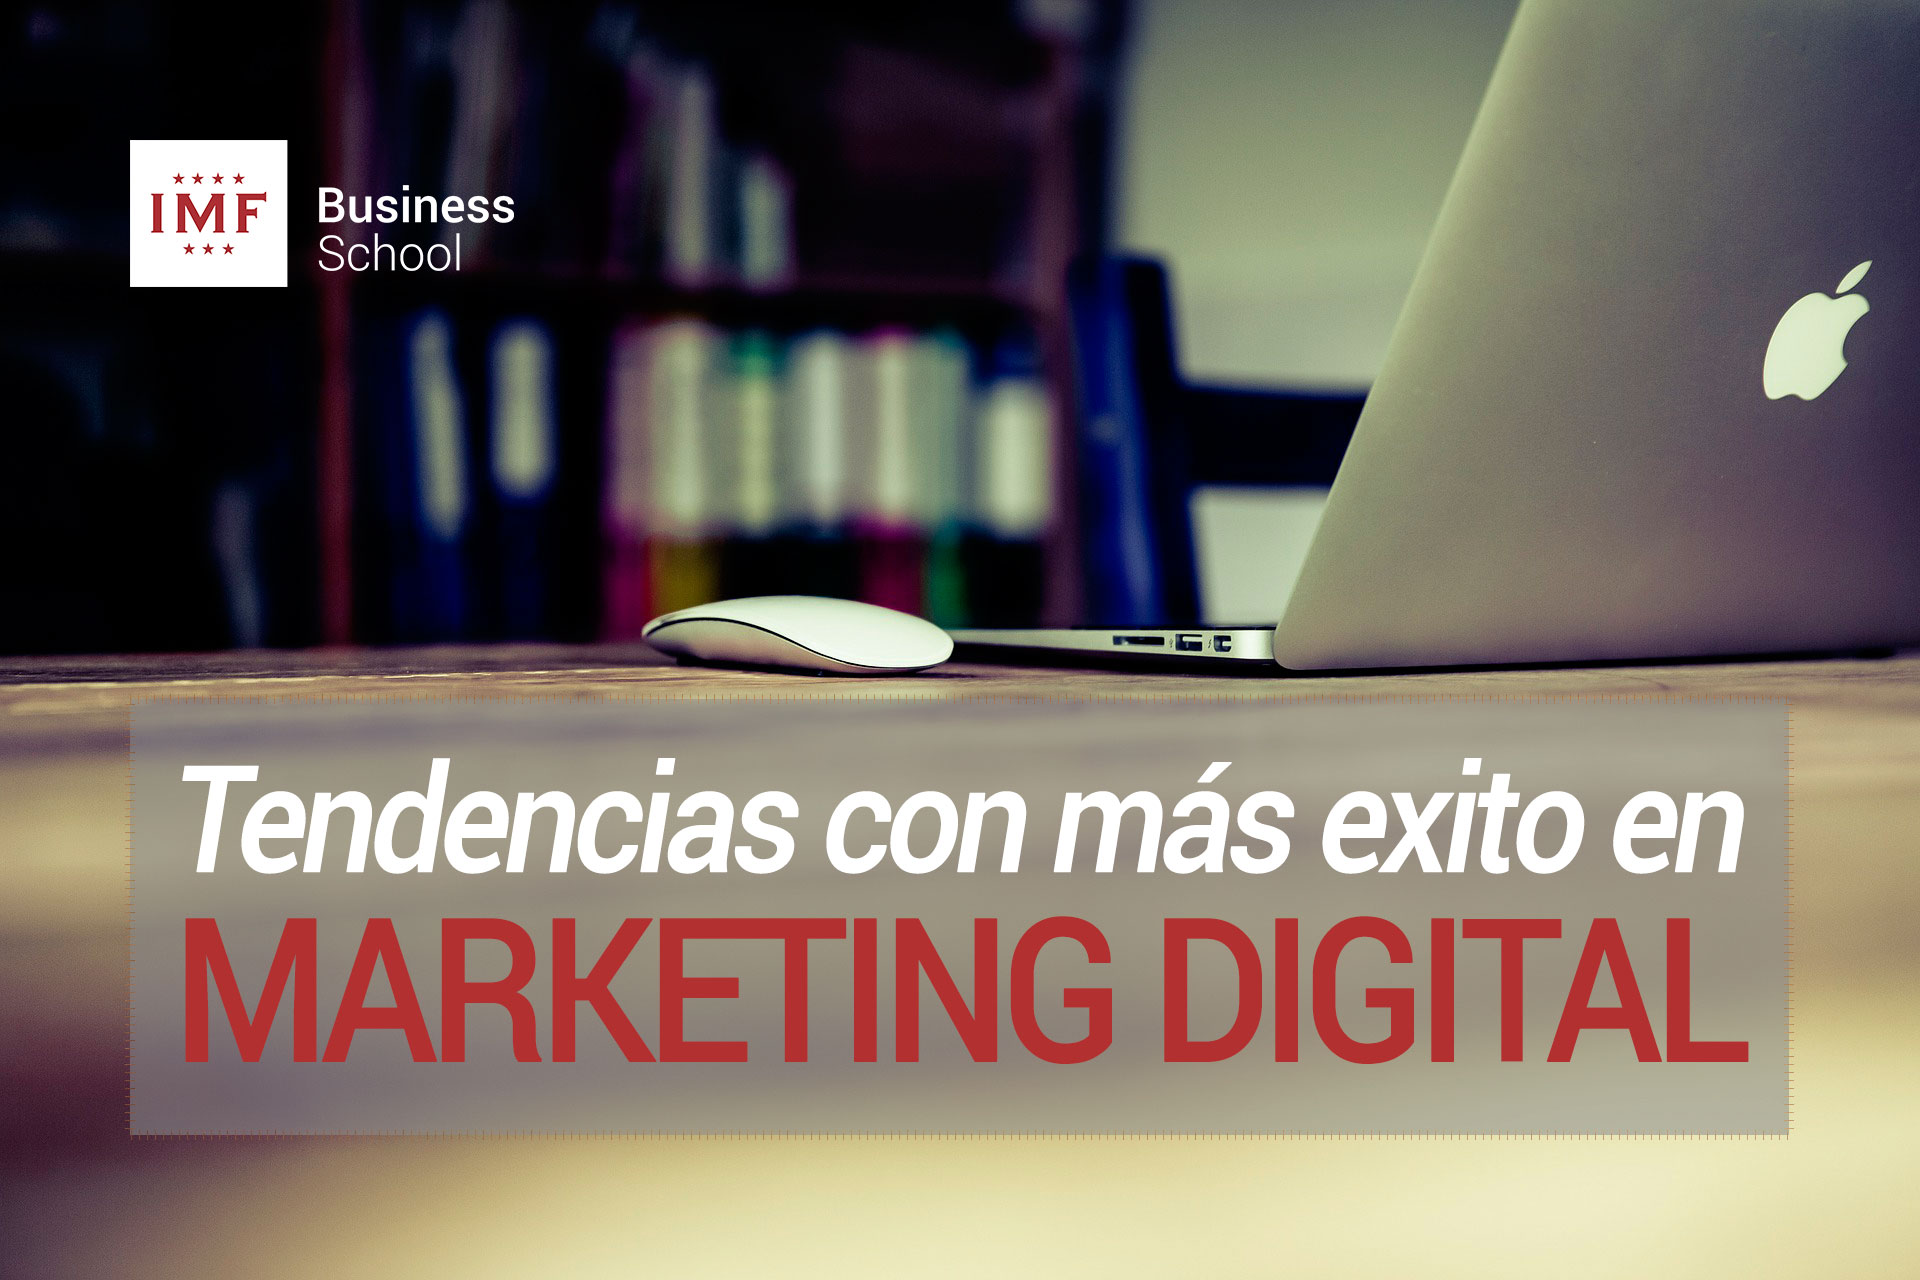 Tendencias 2015 en Marketing Digital con más éxito